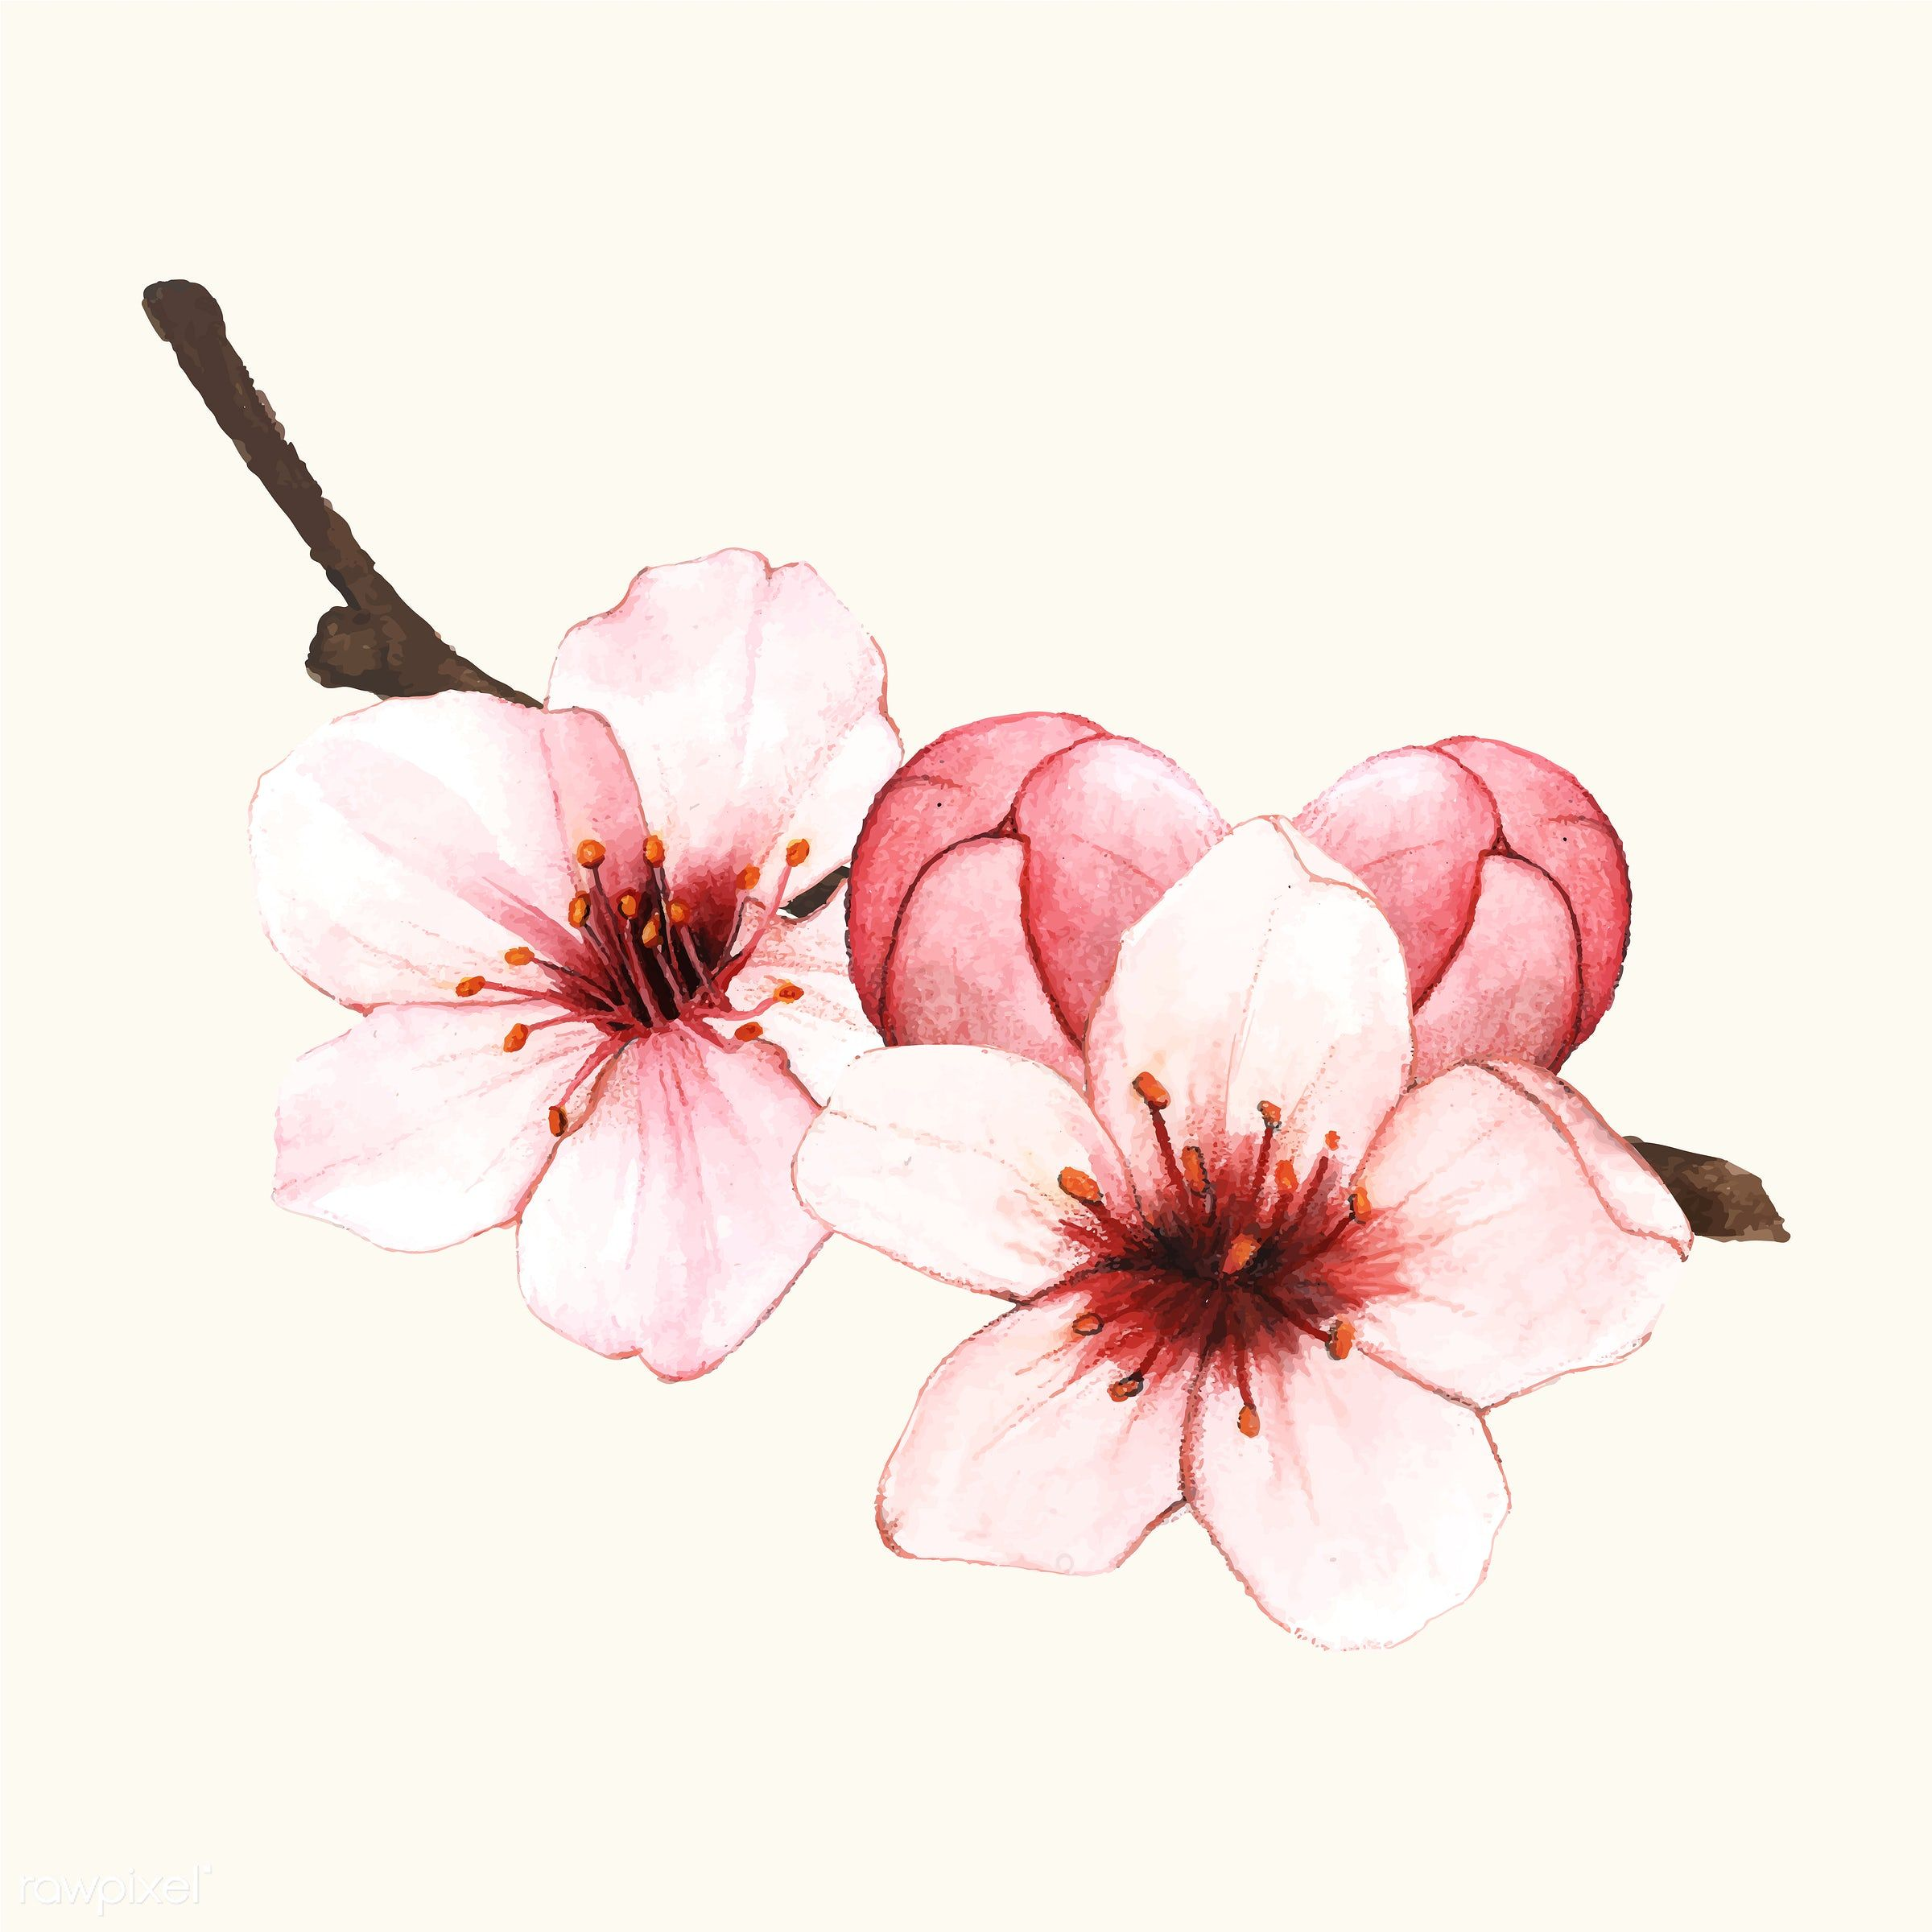 Image Result For Cherry Blooms Flowers Png Cherry Blossom Art Cherry Blossom Drawing Flower Drawing